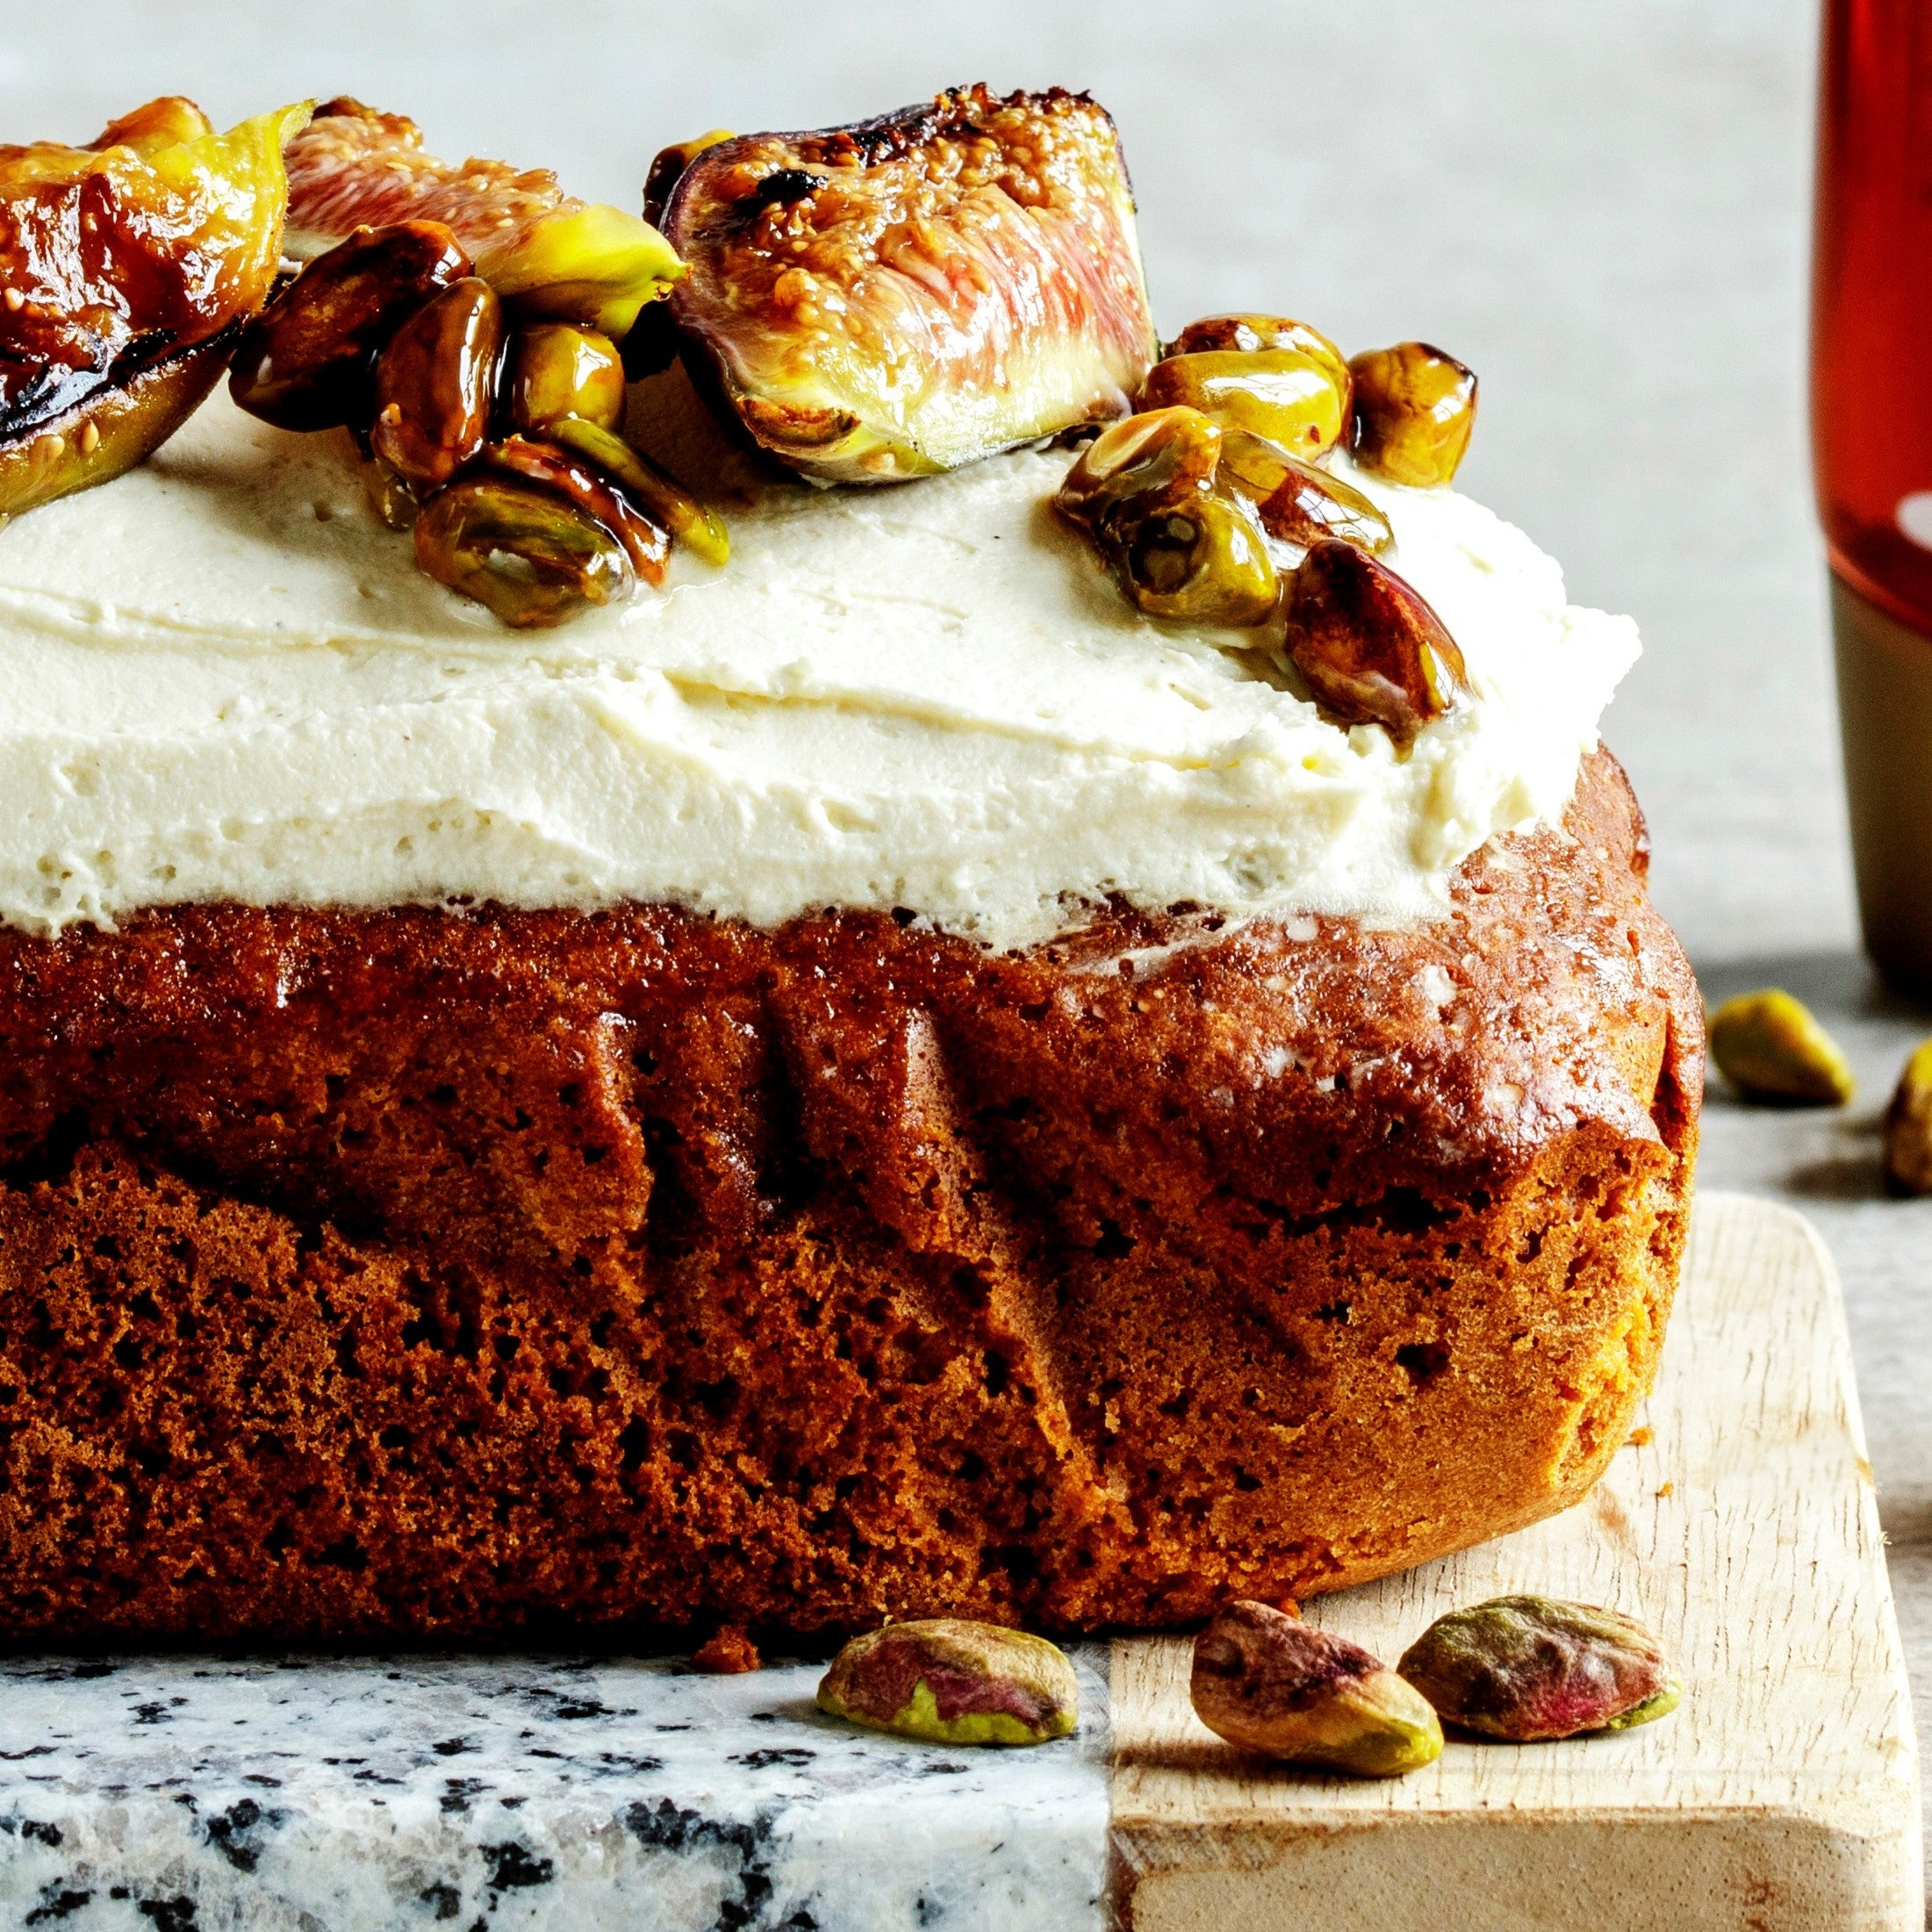 Close up of loaf cake with mascarpone topping and figs